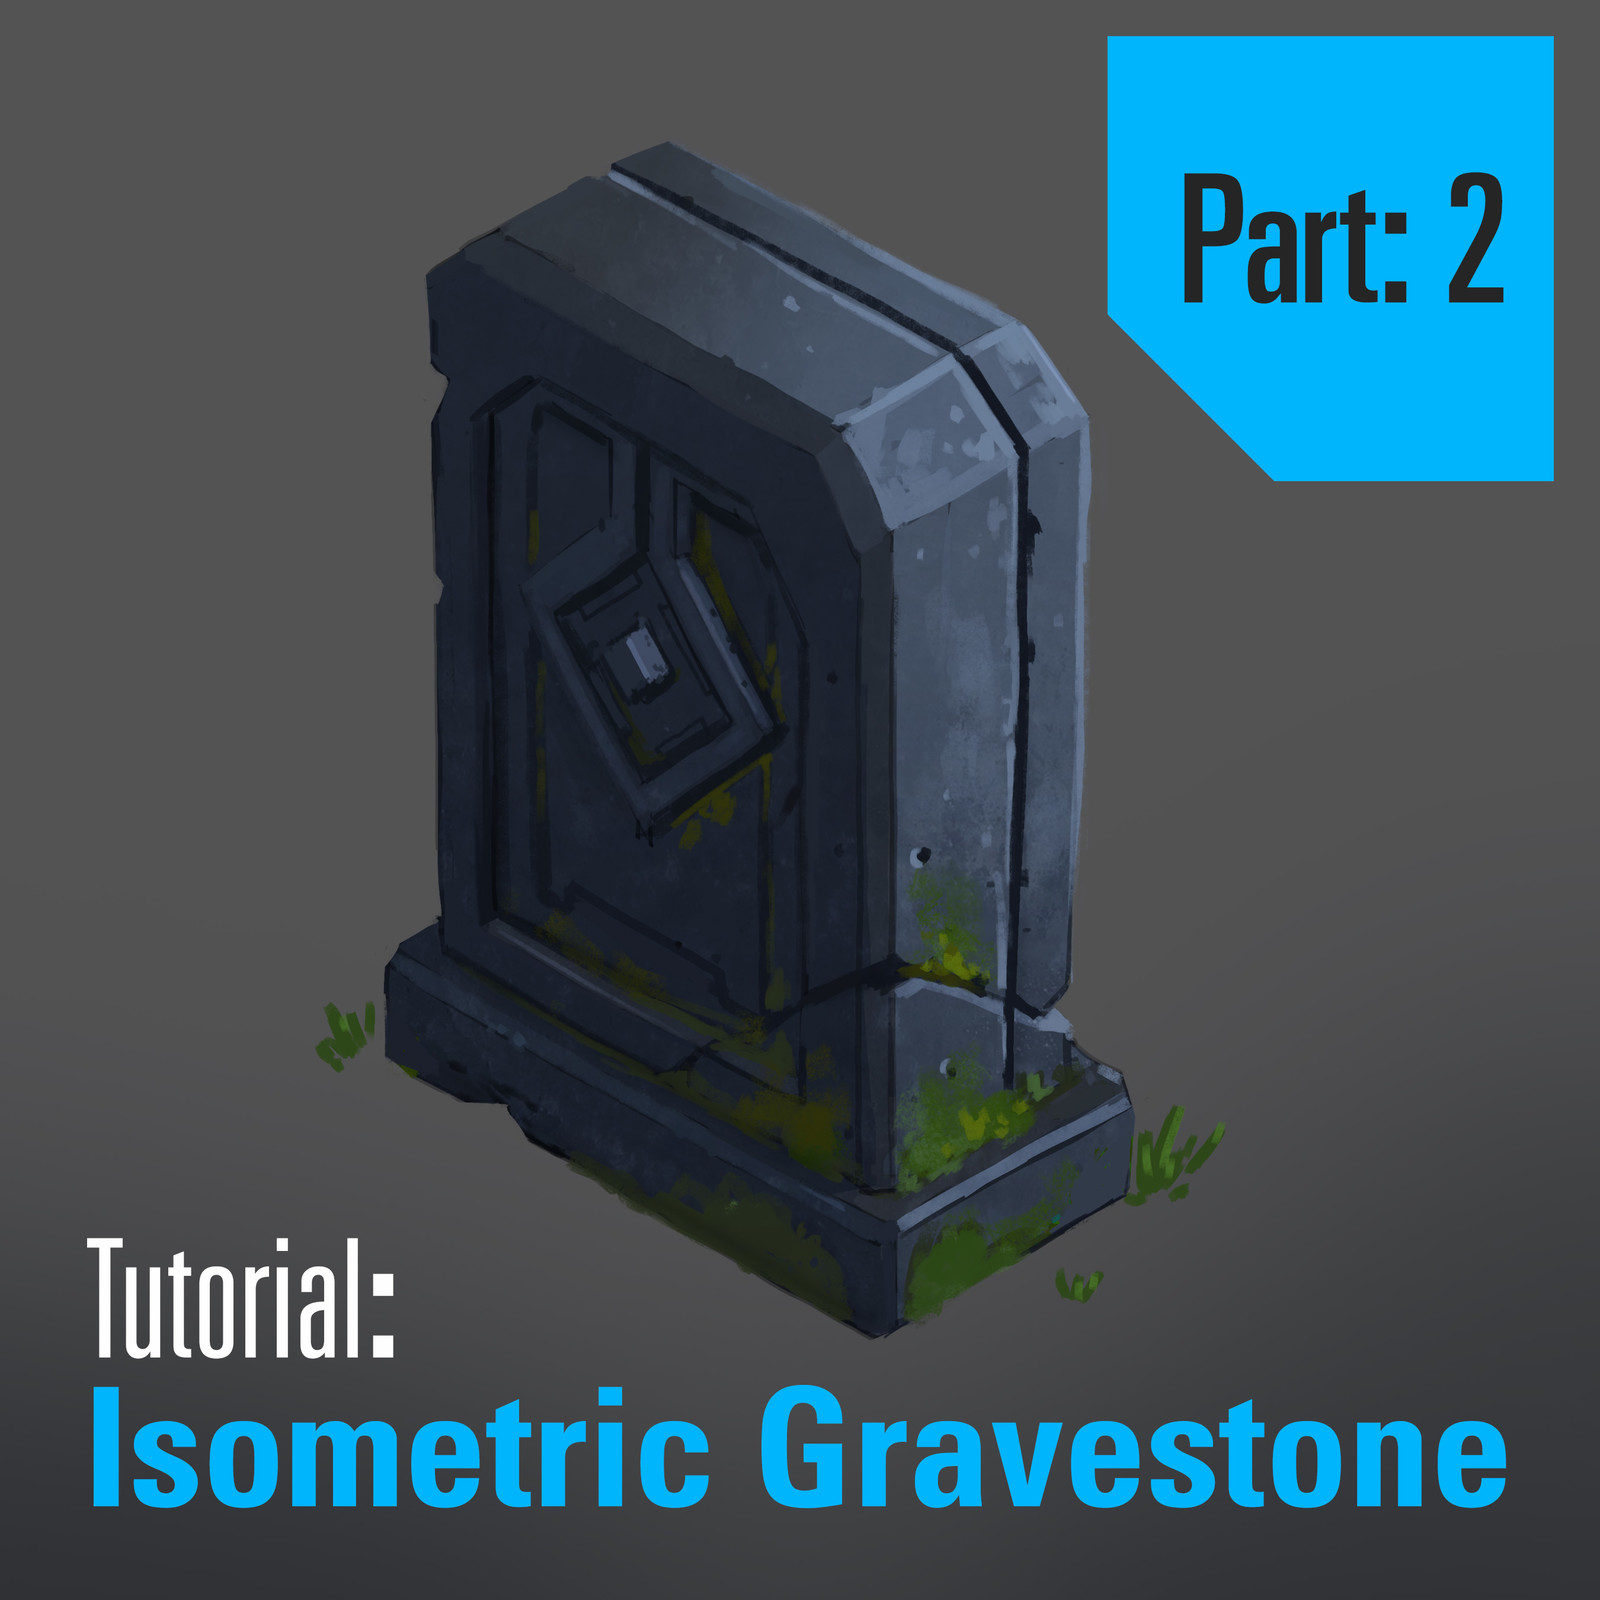 Tutorial: Isometric Gravestone - Part 2